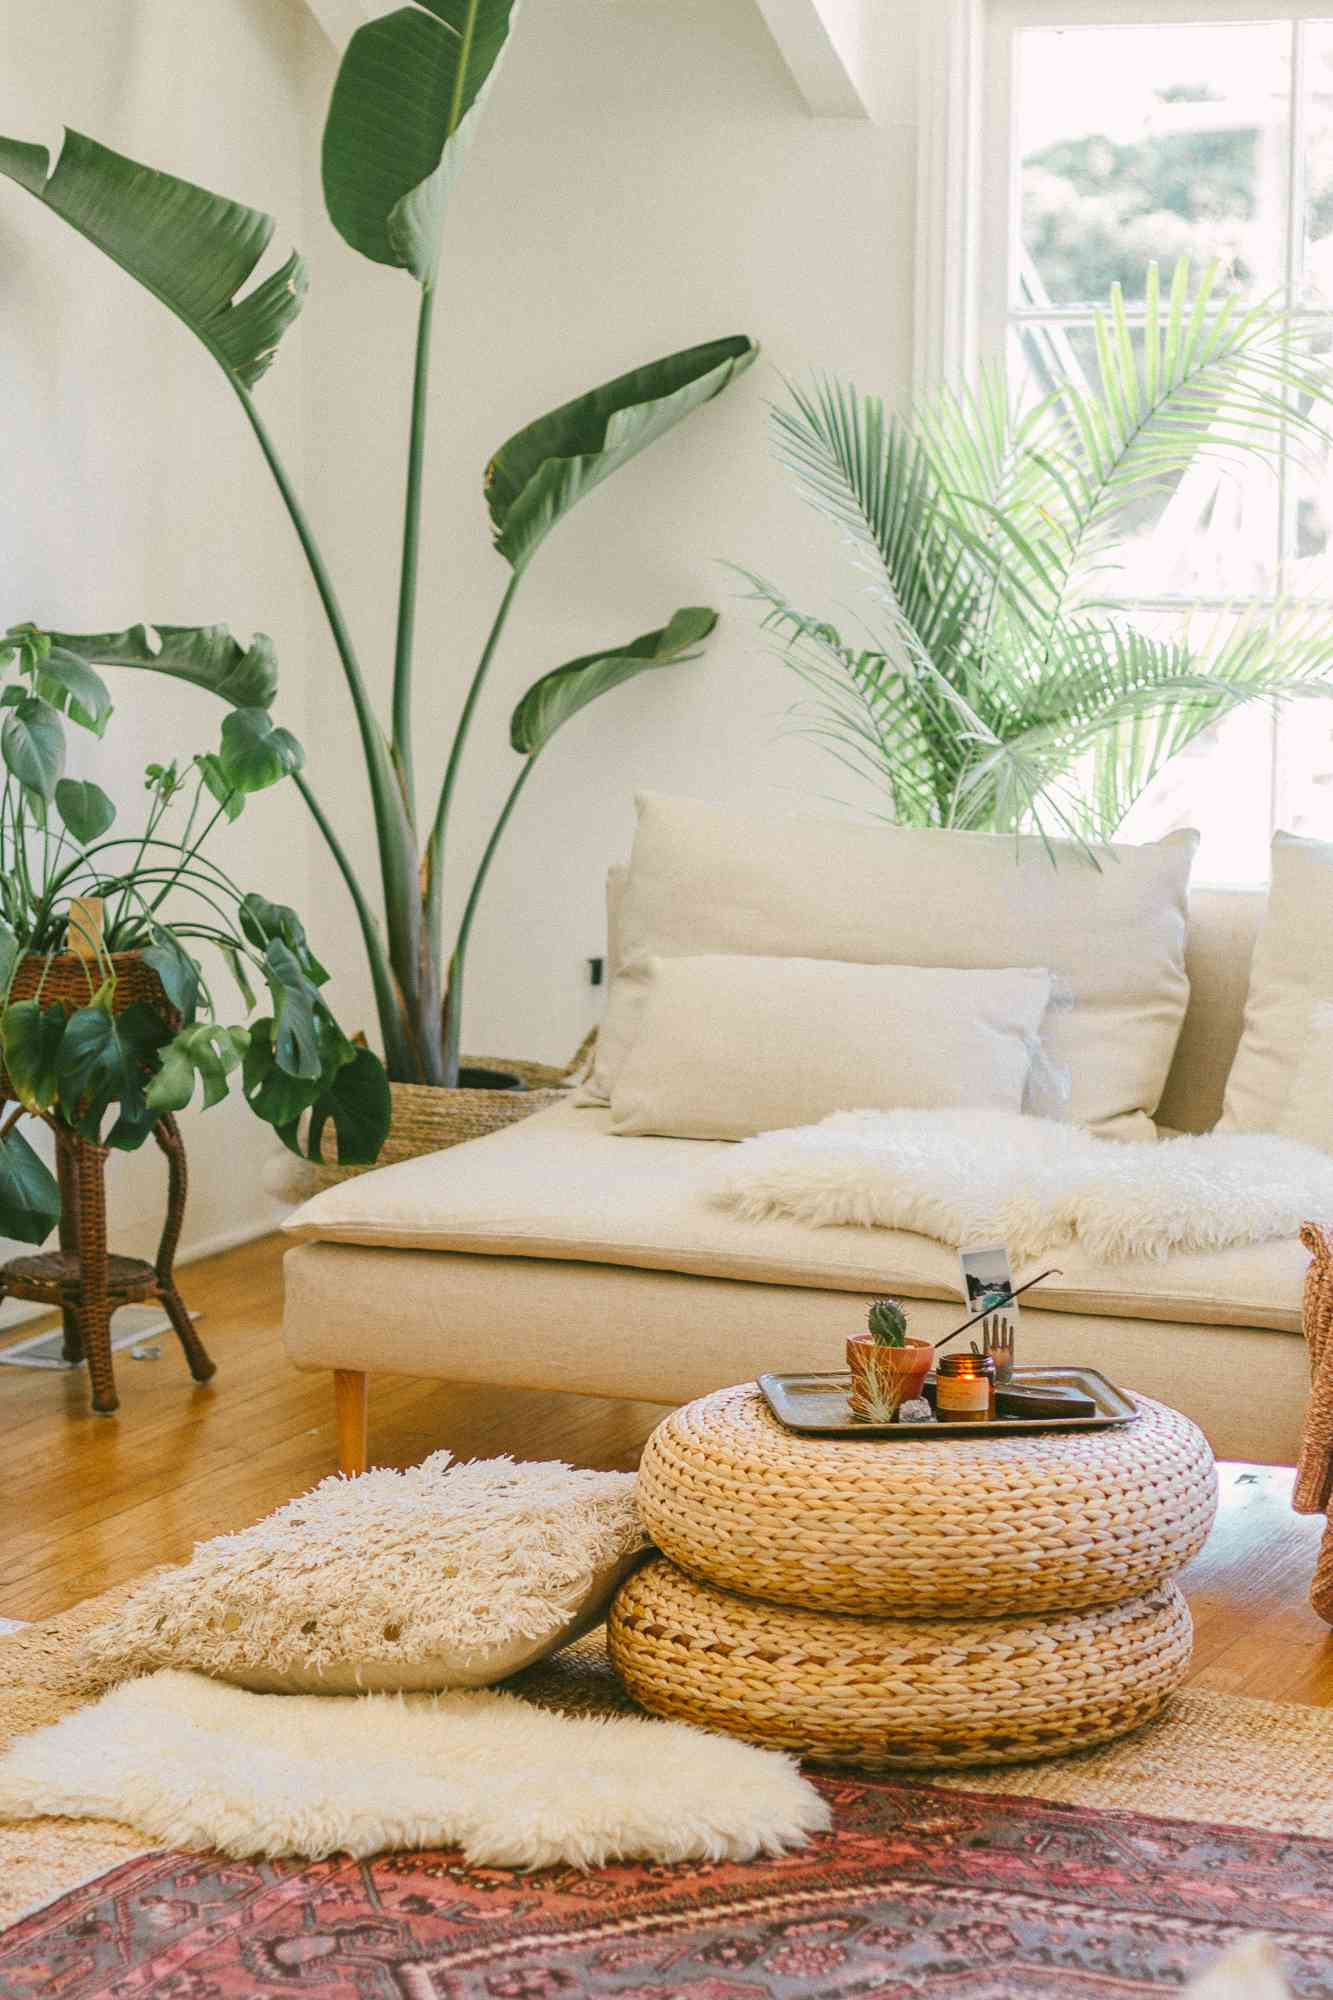 Living room with layers and aromas